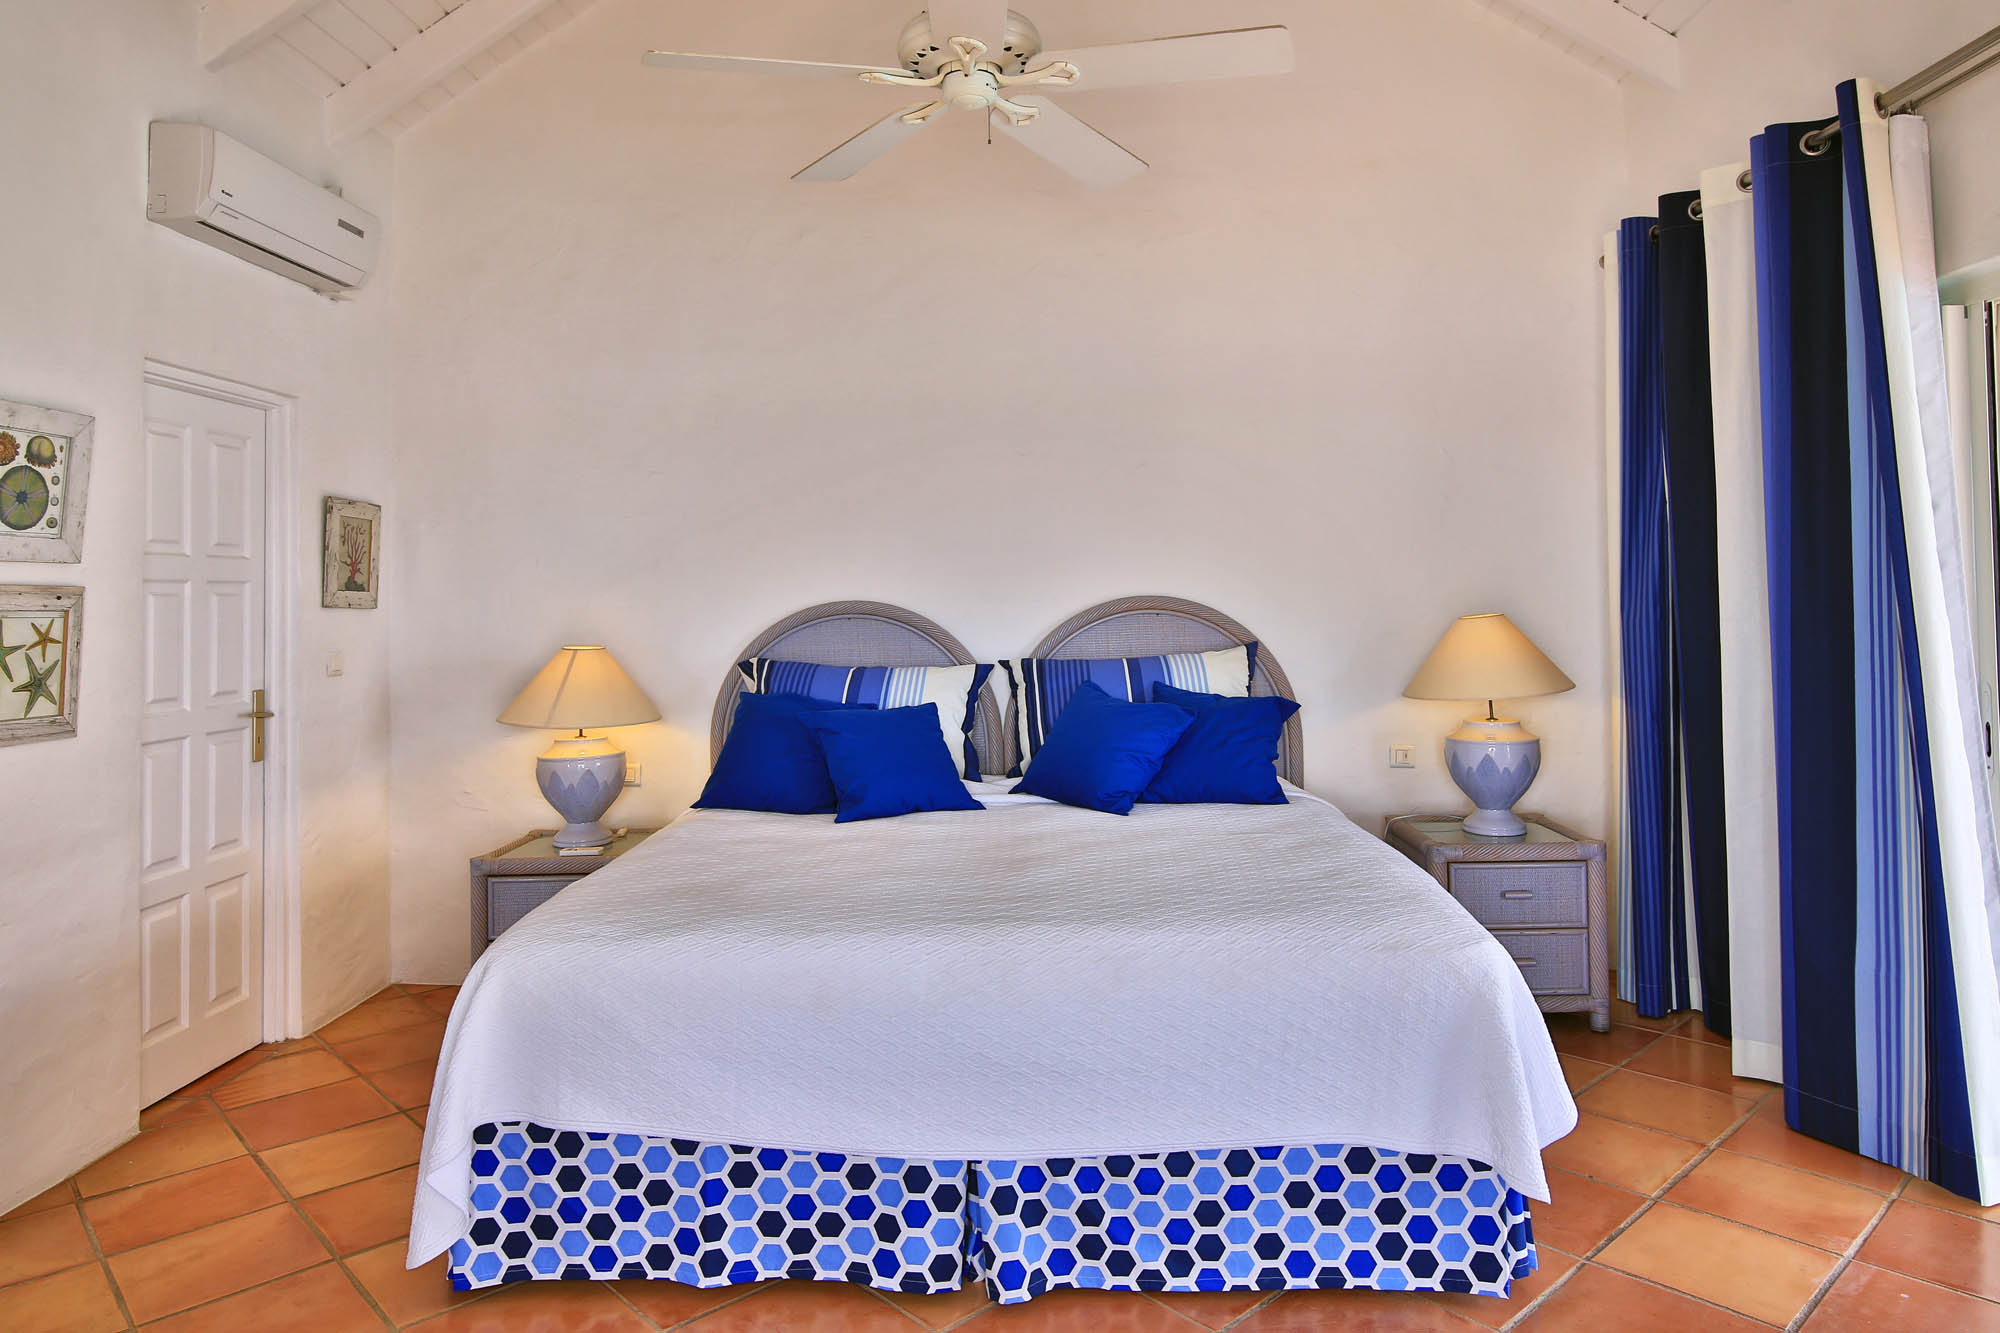 One of the beautifully decorated bedrooms of this Caribbean villa rental.